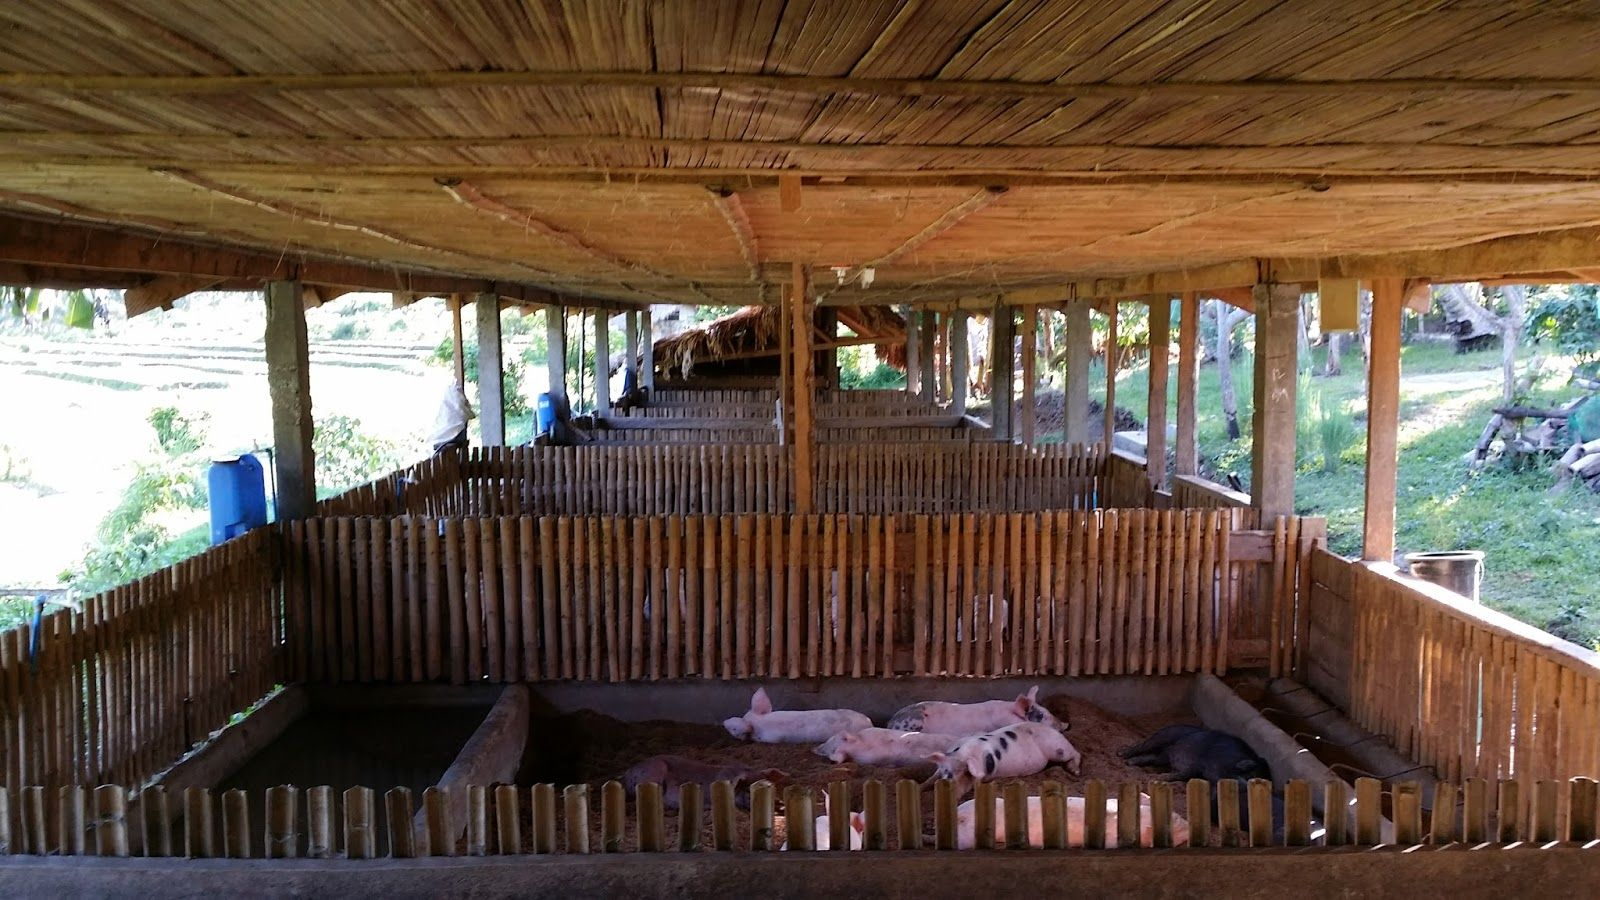 Piggery House Design Philippines House Interior Pig House Bamboo House Philippine Houses